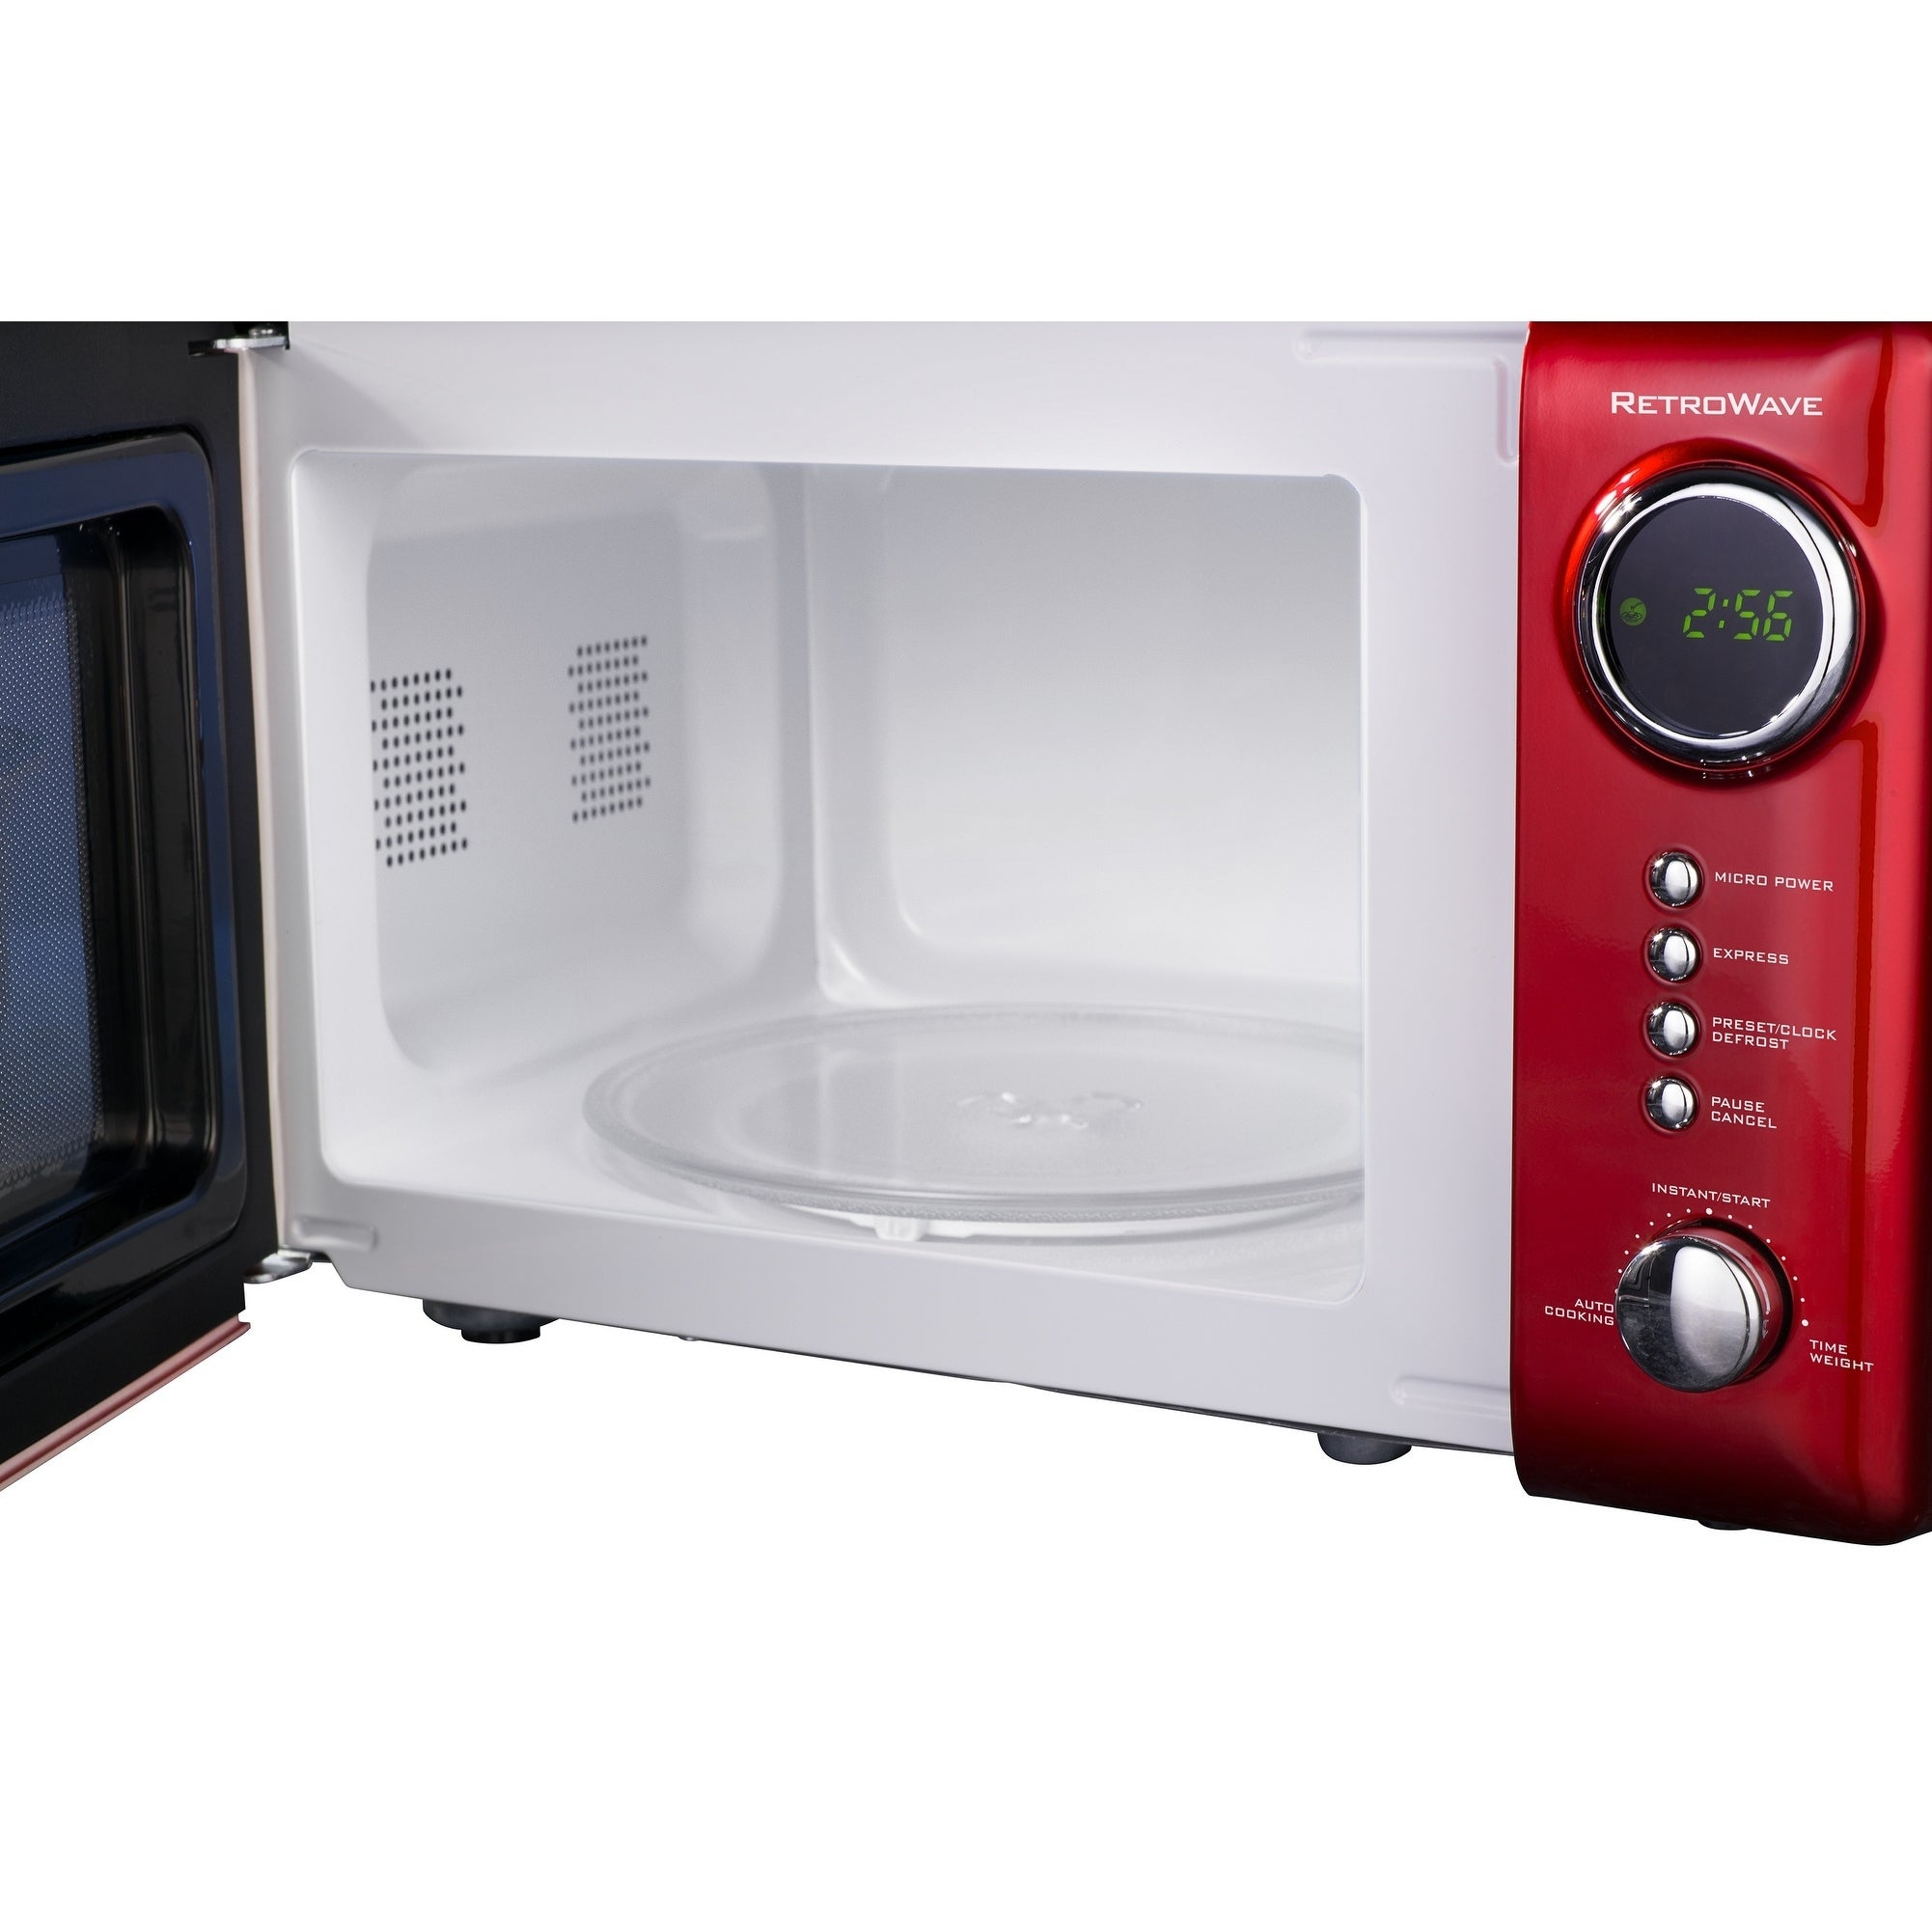 Nostalgia Rmo770red Retro 0 7 Cubic Foot 700 Watt Countertop Microwave Oven Red Free Shipping Today 8388172